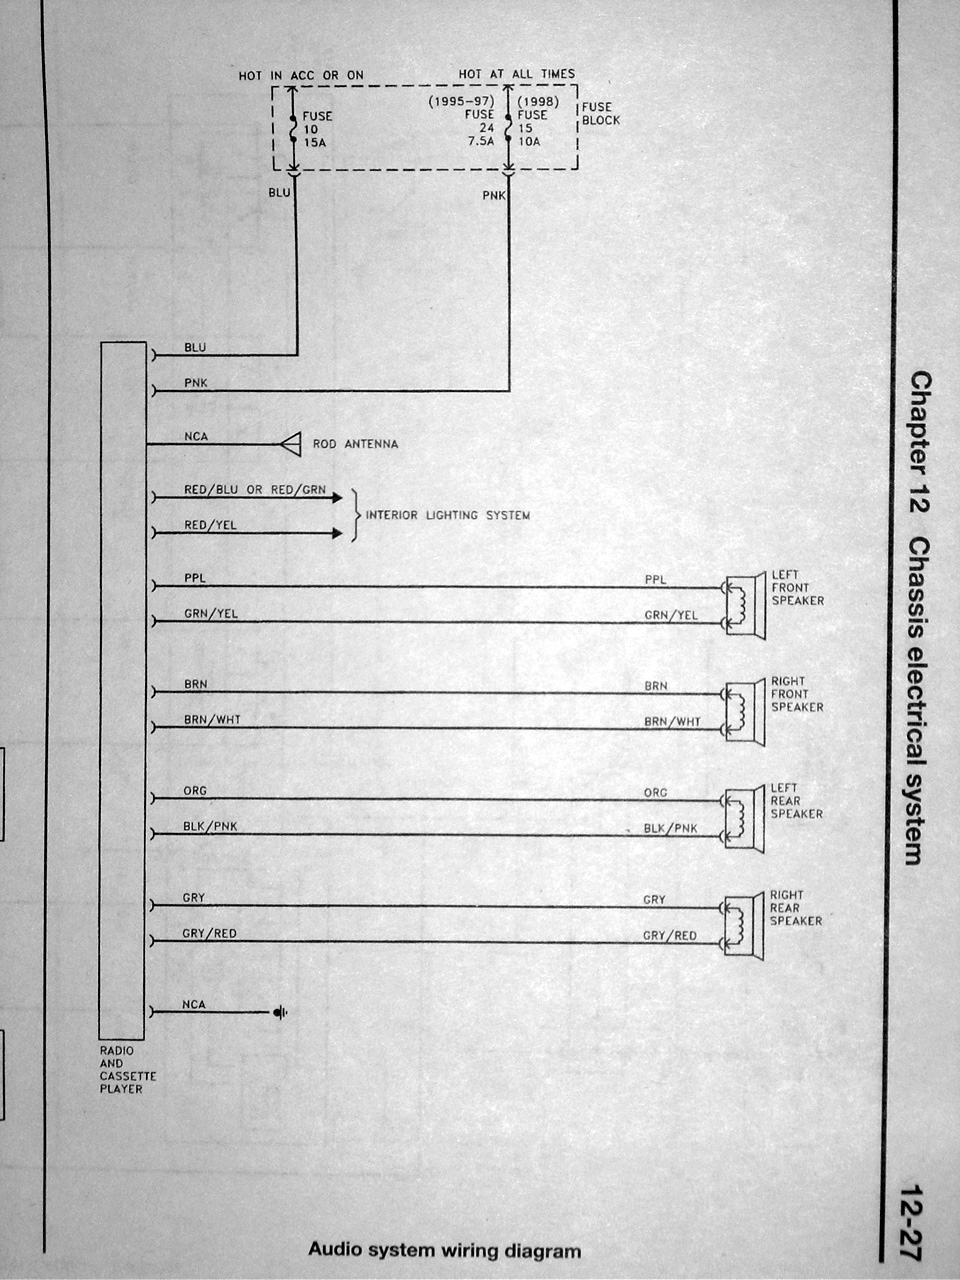 DSC01849 wiring diagram thread *useful info* nissan forum 93 240sx radio wiring diagram at gsmx.co